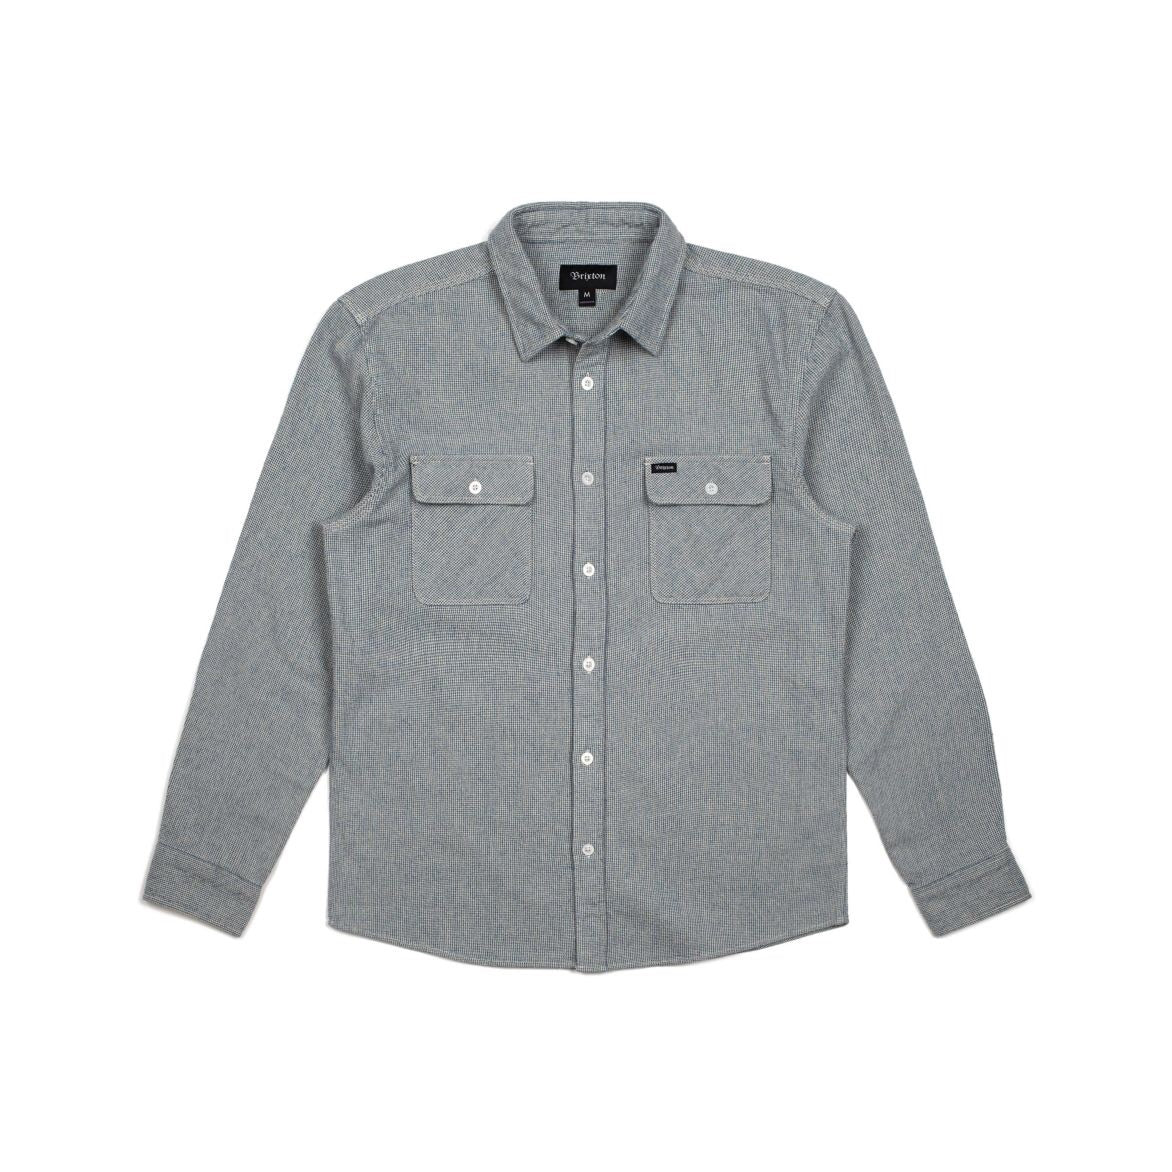 Bowery Flannel Light Blue/White